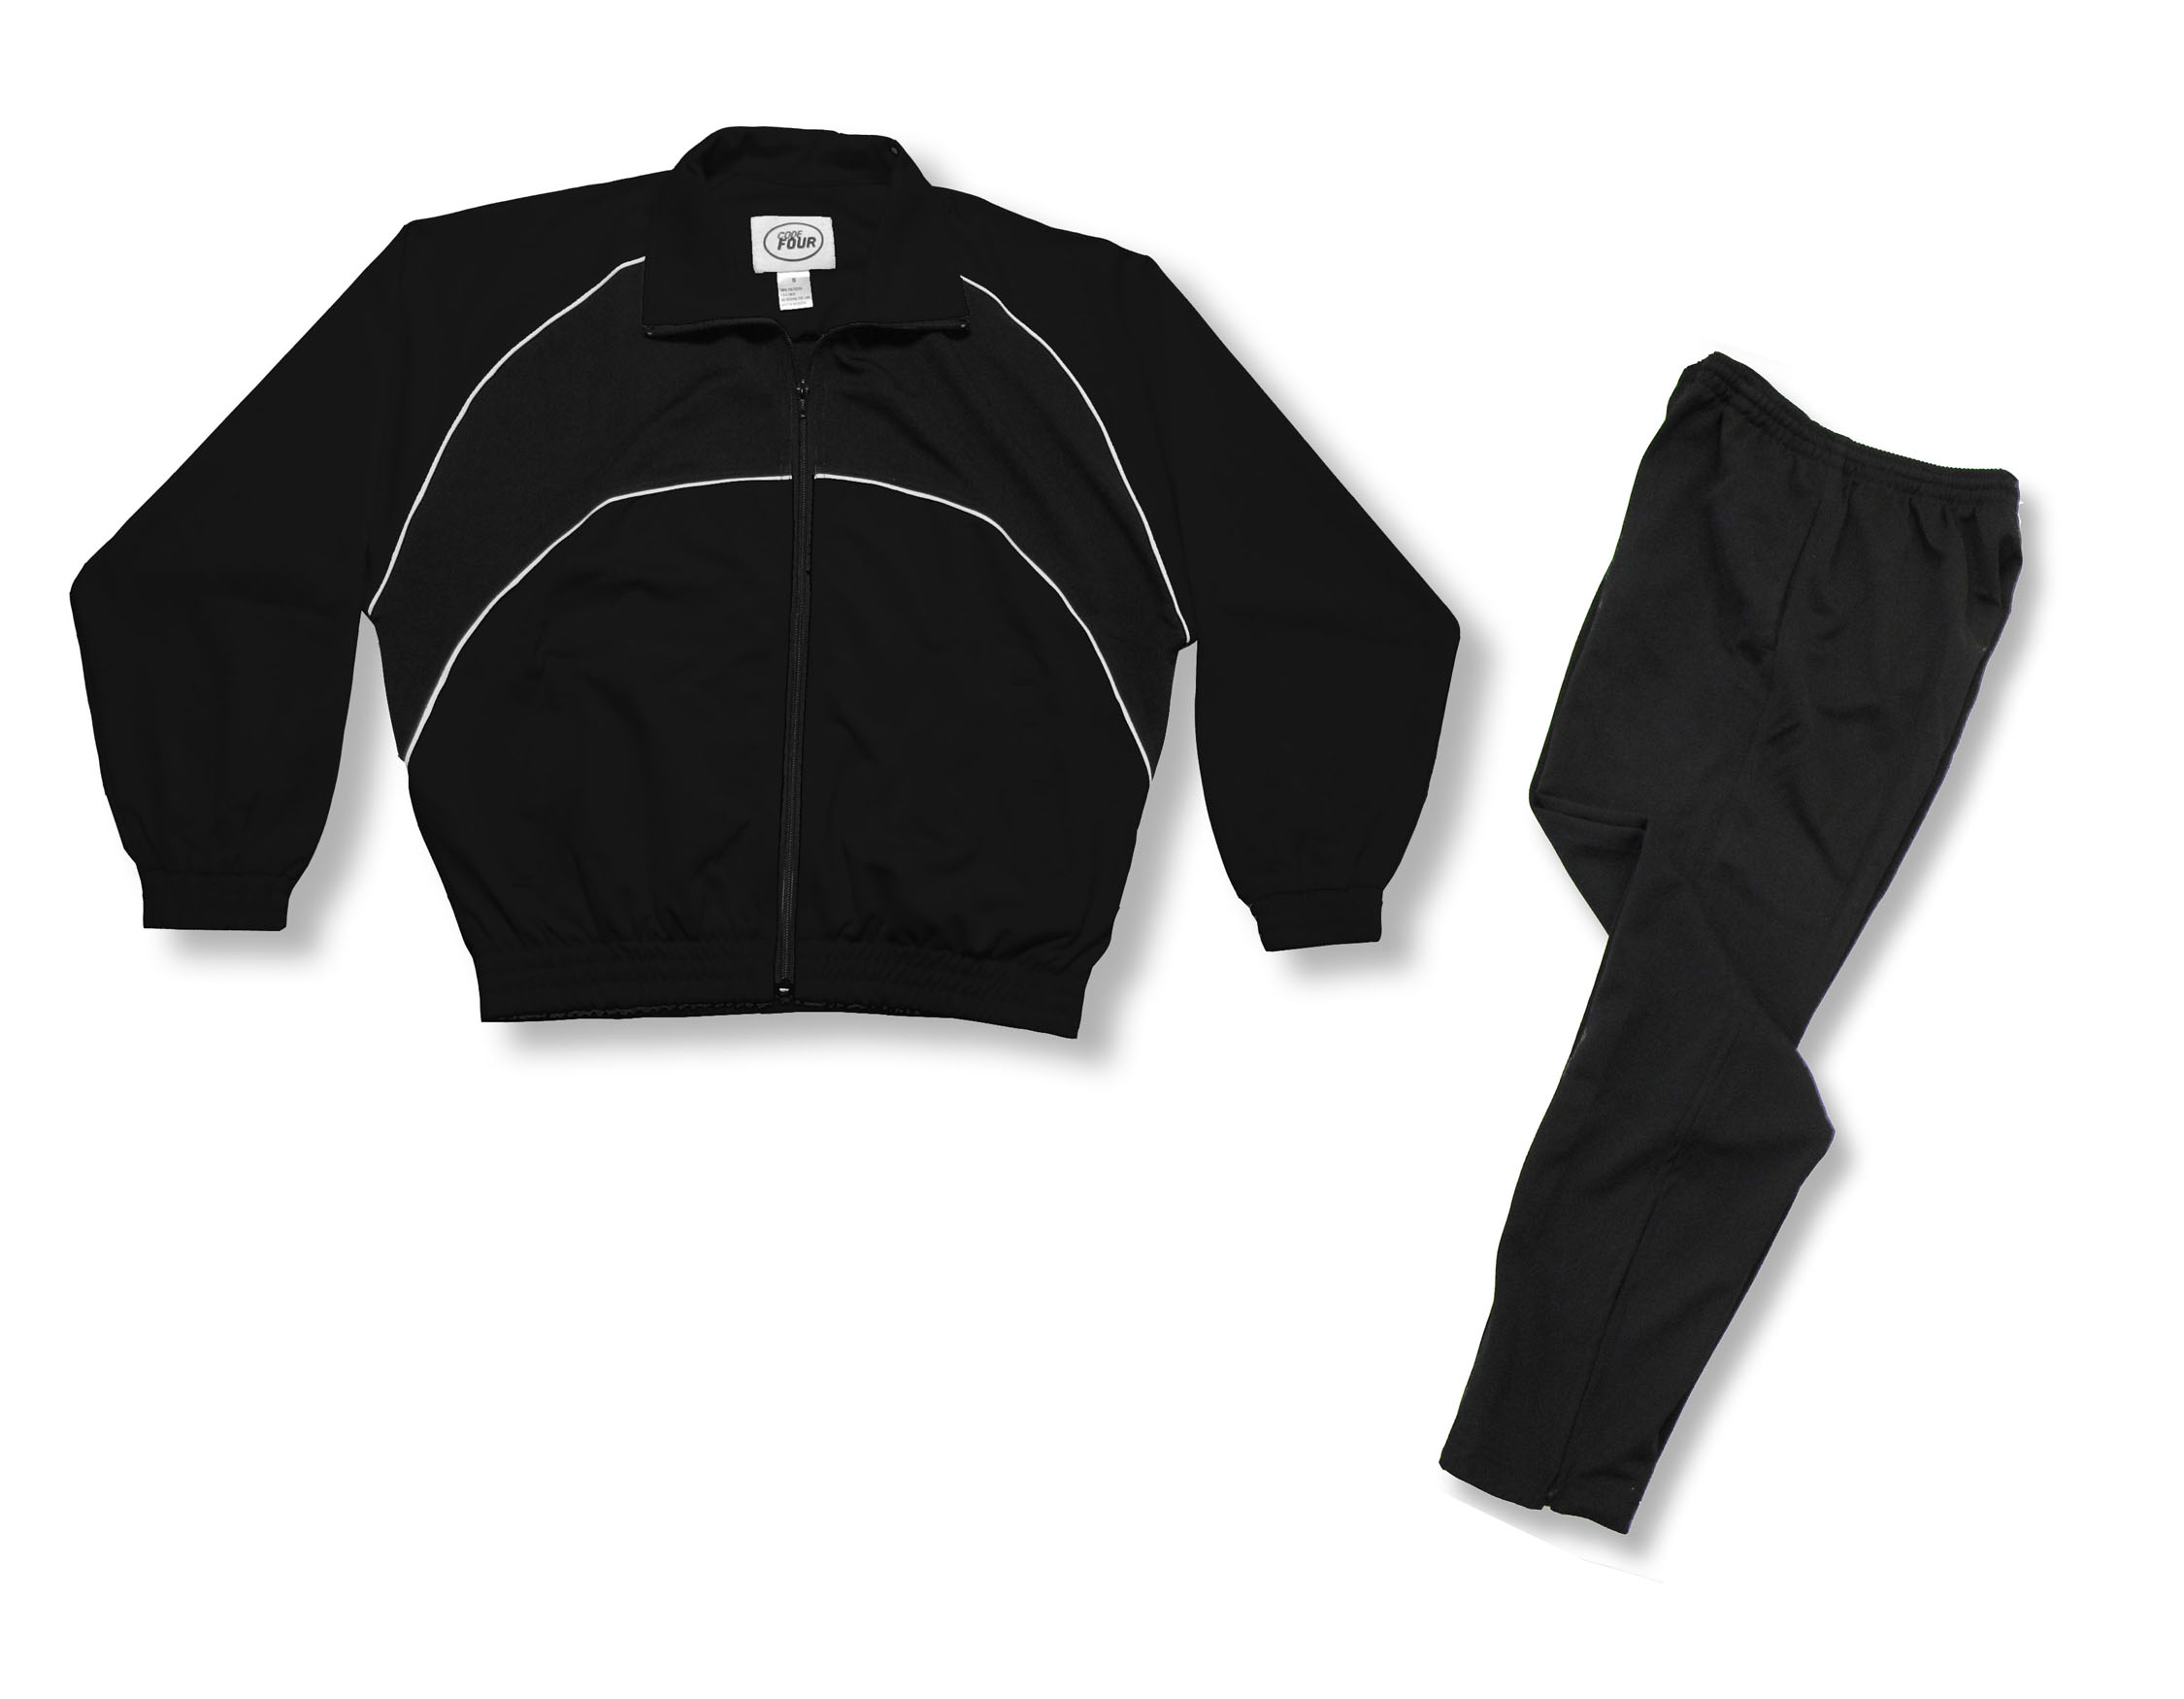 Crossfire Primo warmup set in black by Code Four Athletics